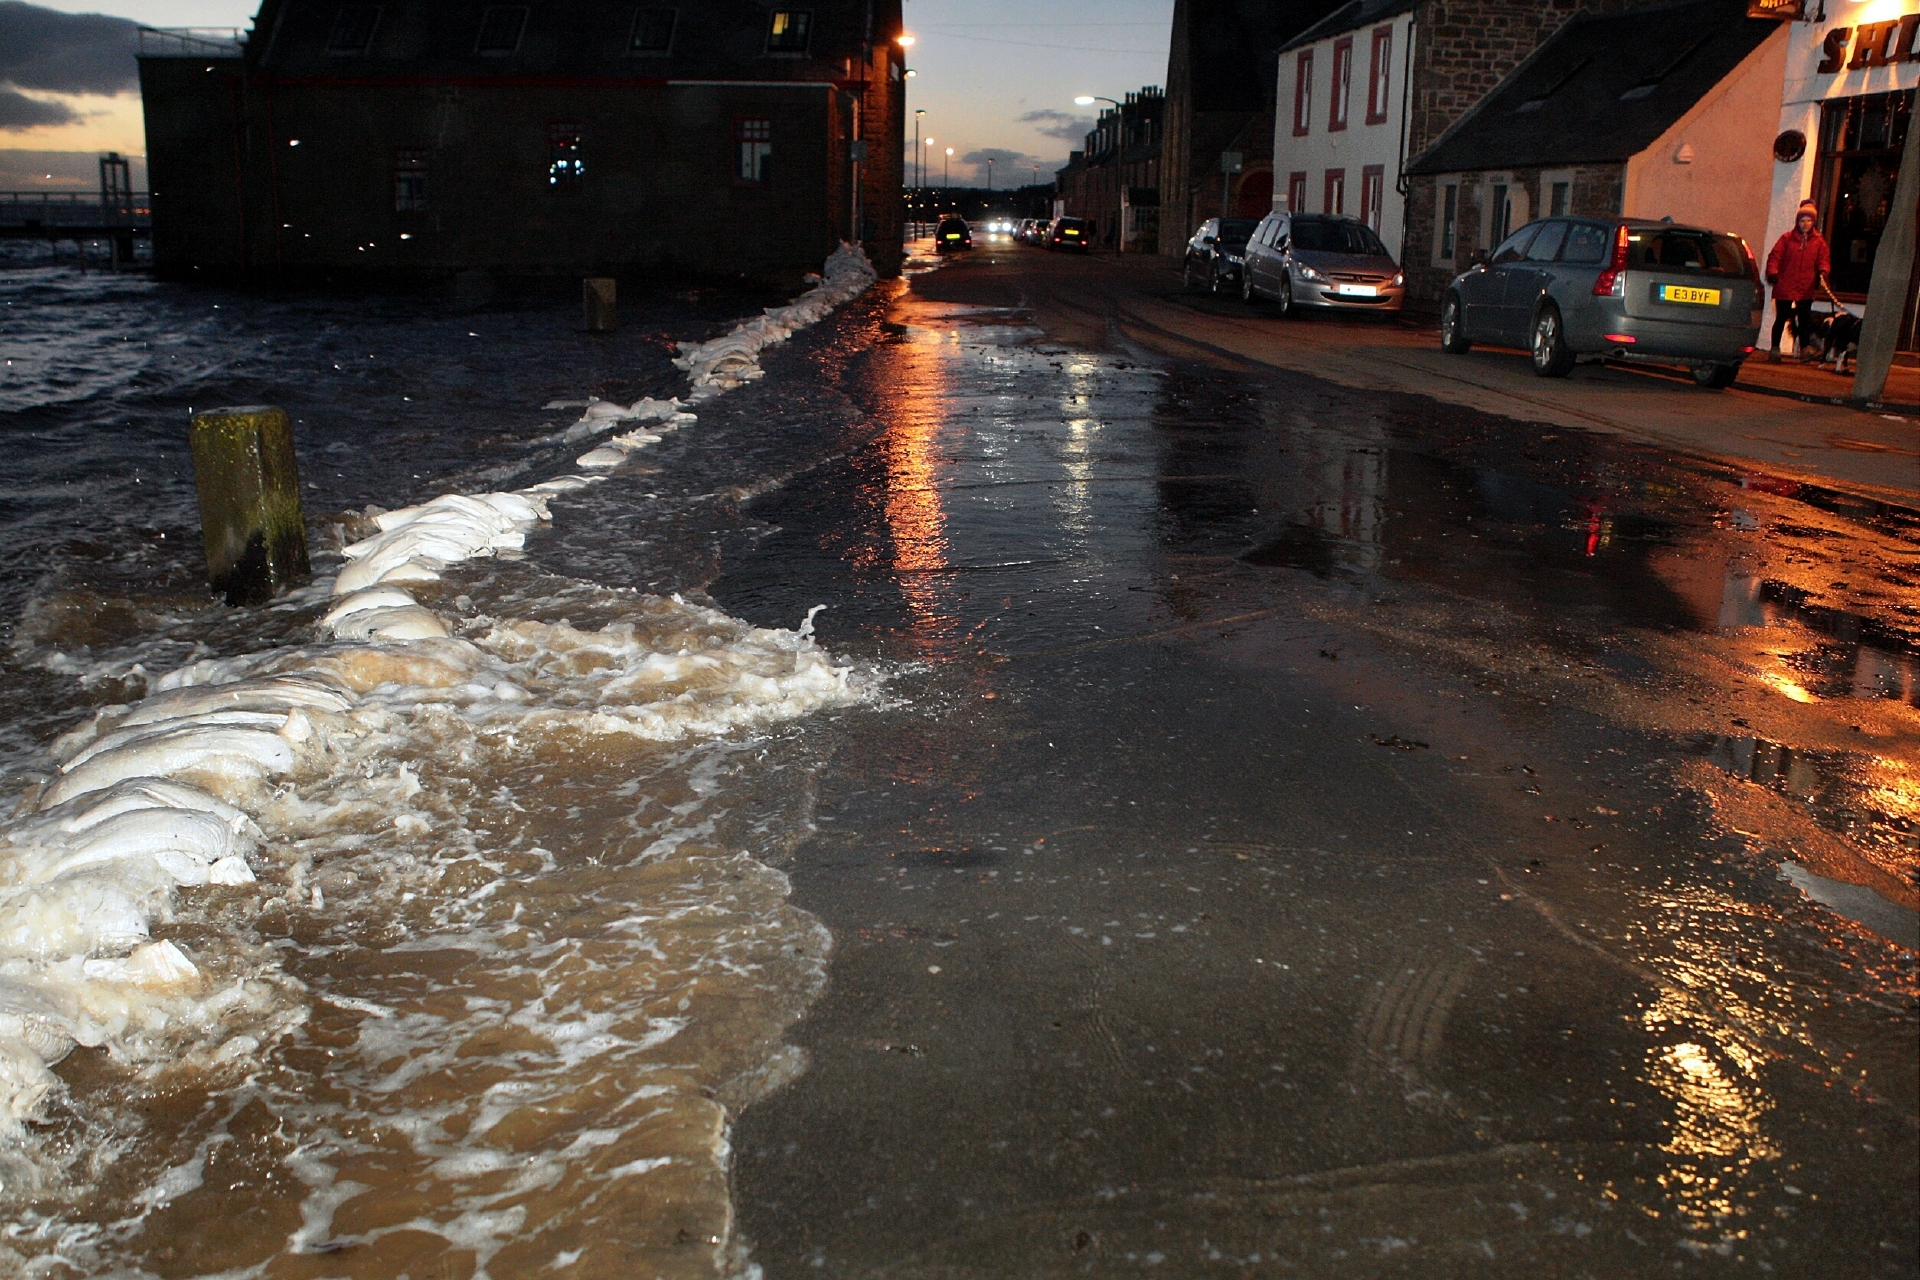 Areas of the Ferry have been identified as being at risk of flooding.